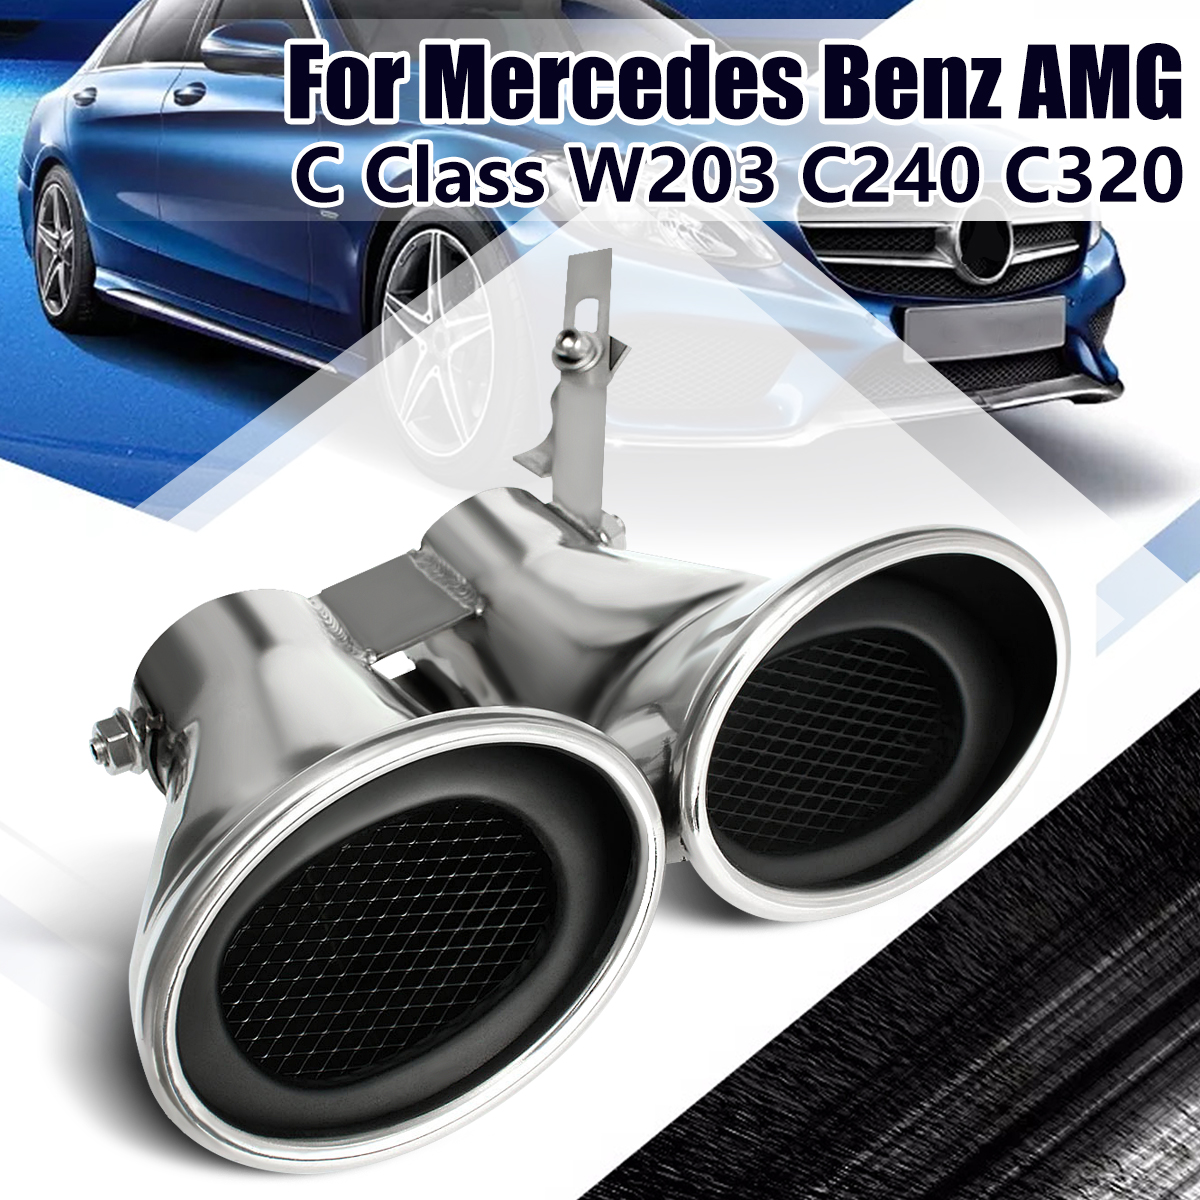 silencer w203 amg - Car Auto Rear Tail Throat Liner Stainless Steel Dual Exhaust Muffler Pipe For MERCEDES-BENZ -AMG C Class W203 C240 C320